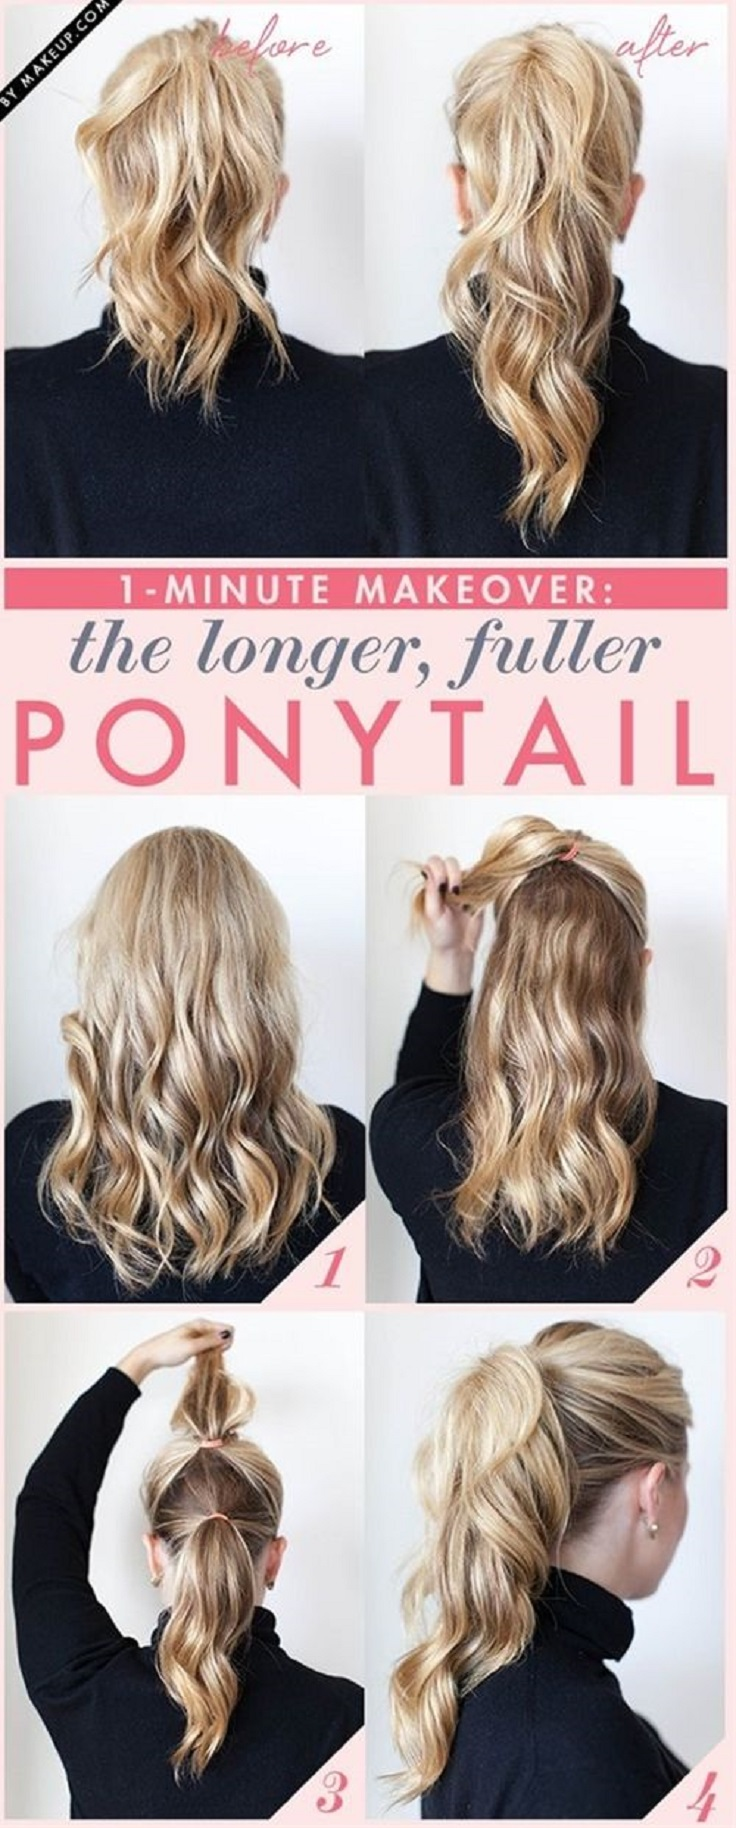 double-ponytail-trick